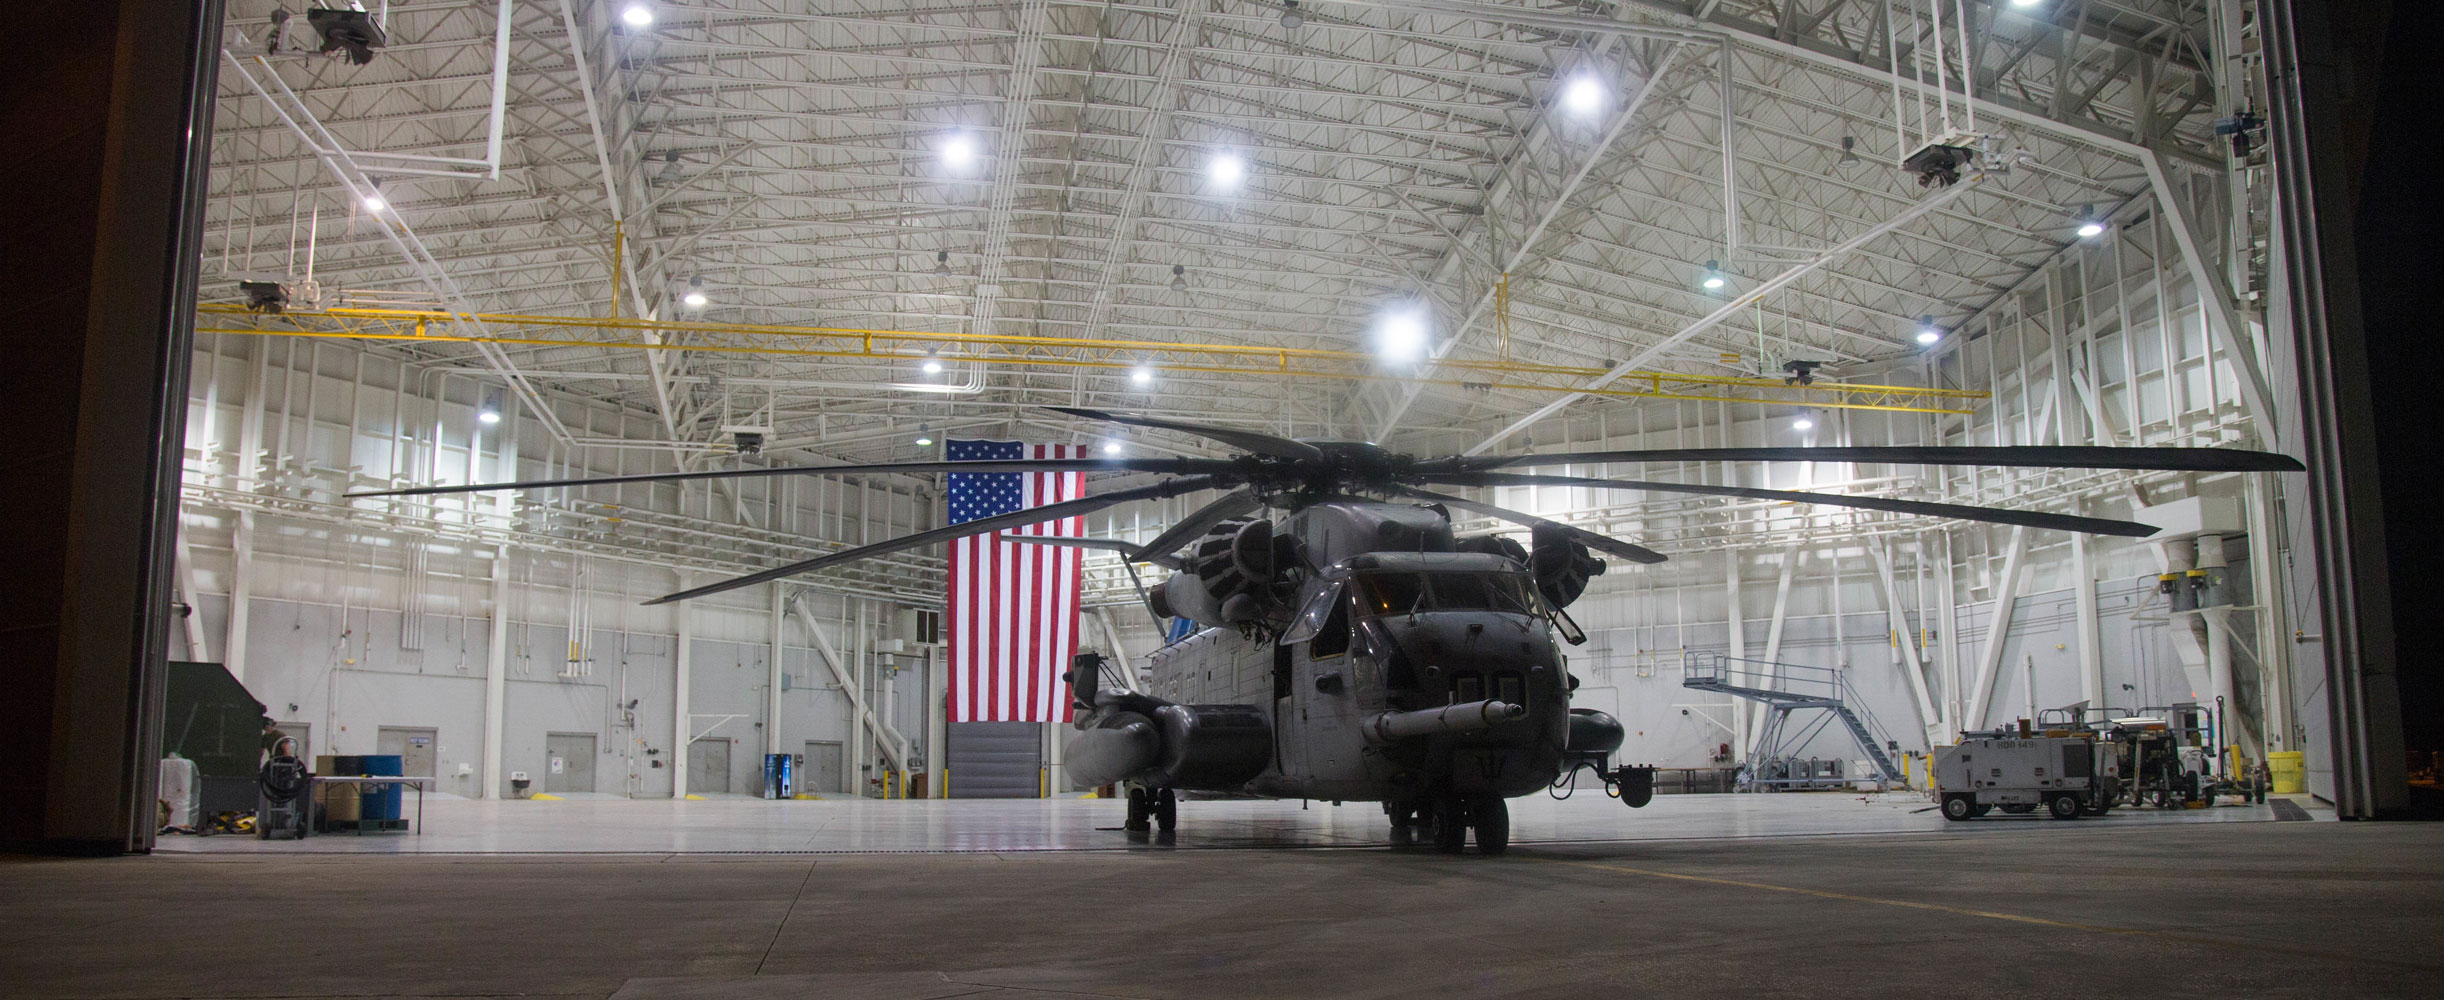 A CH-53E Super Stallion assigned to Marine Heavy Helicopter Squadron (HMH) 461 is staged in a hanger during Raven 17-06 in Gulfport, Mississippi.